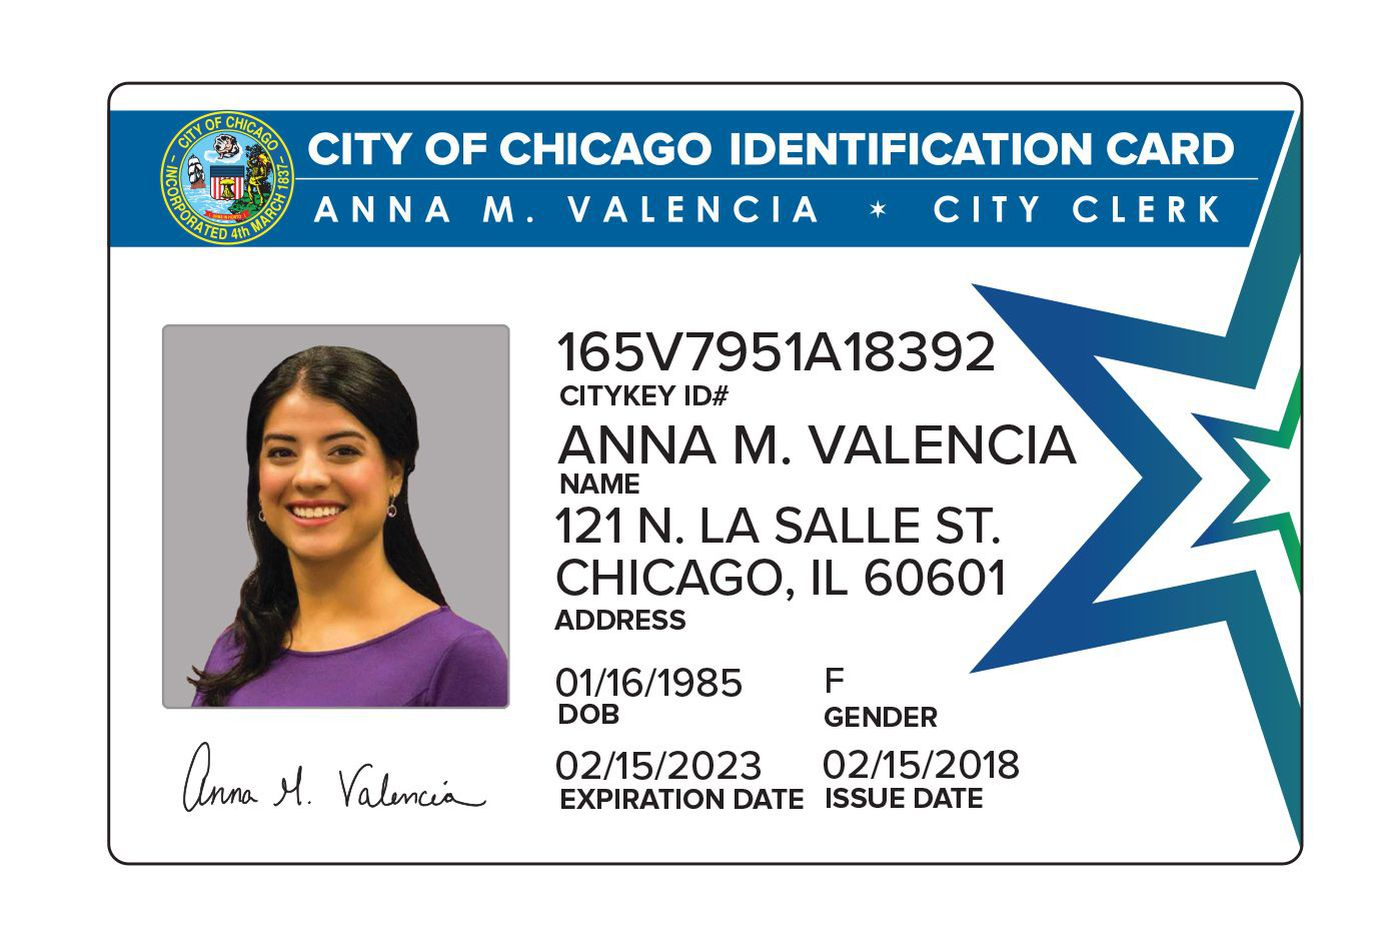 No driver's license, no photo ID? Philadelphia will issue municipal ID cards starting next year